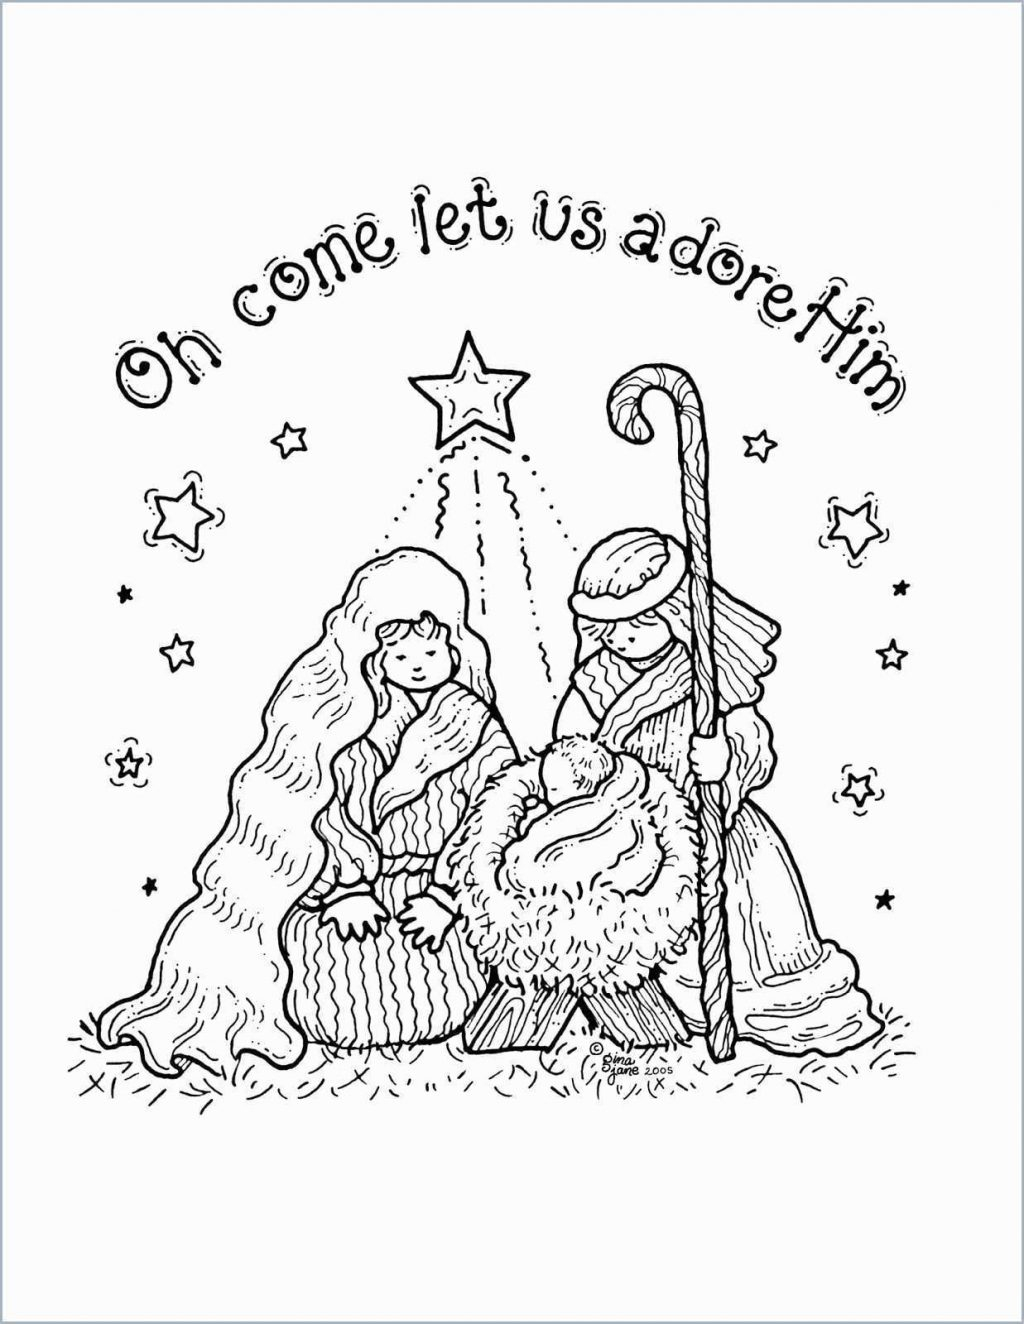 Coloring Pages ~ Christmas Card Printable Coloring Pages For Husband - Free Printable Christmas Cards To Color